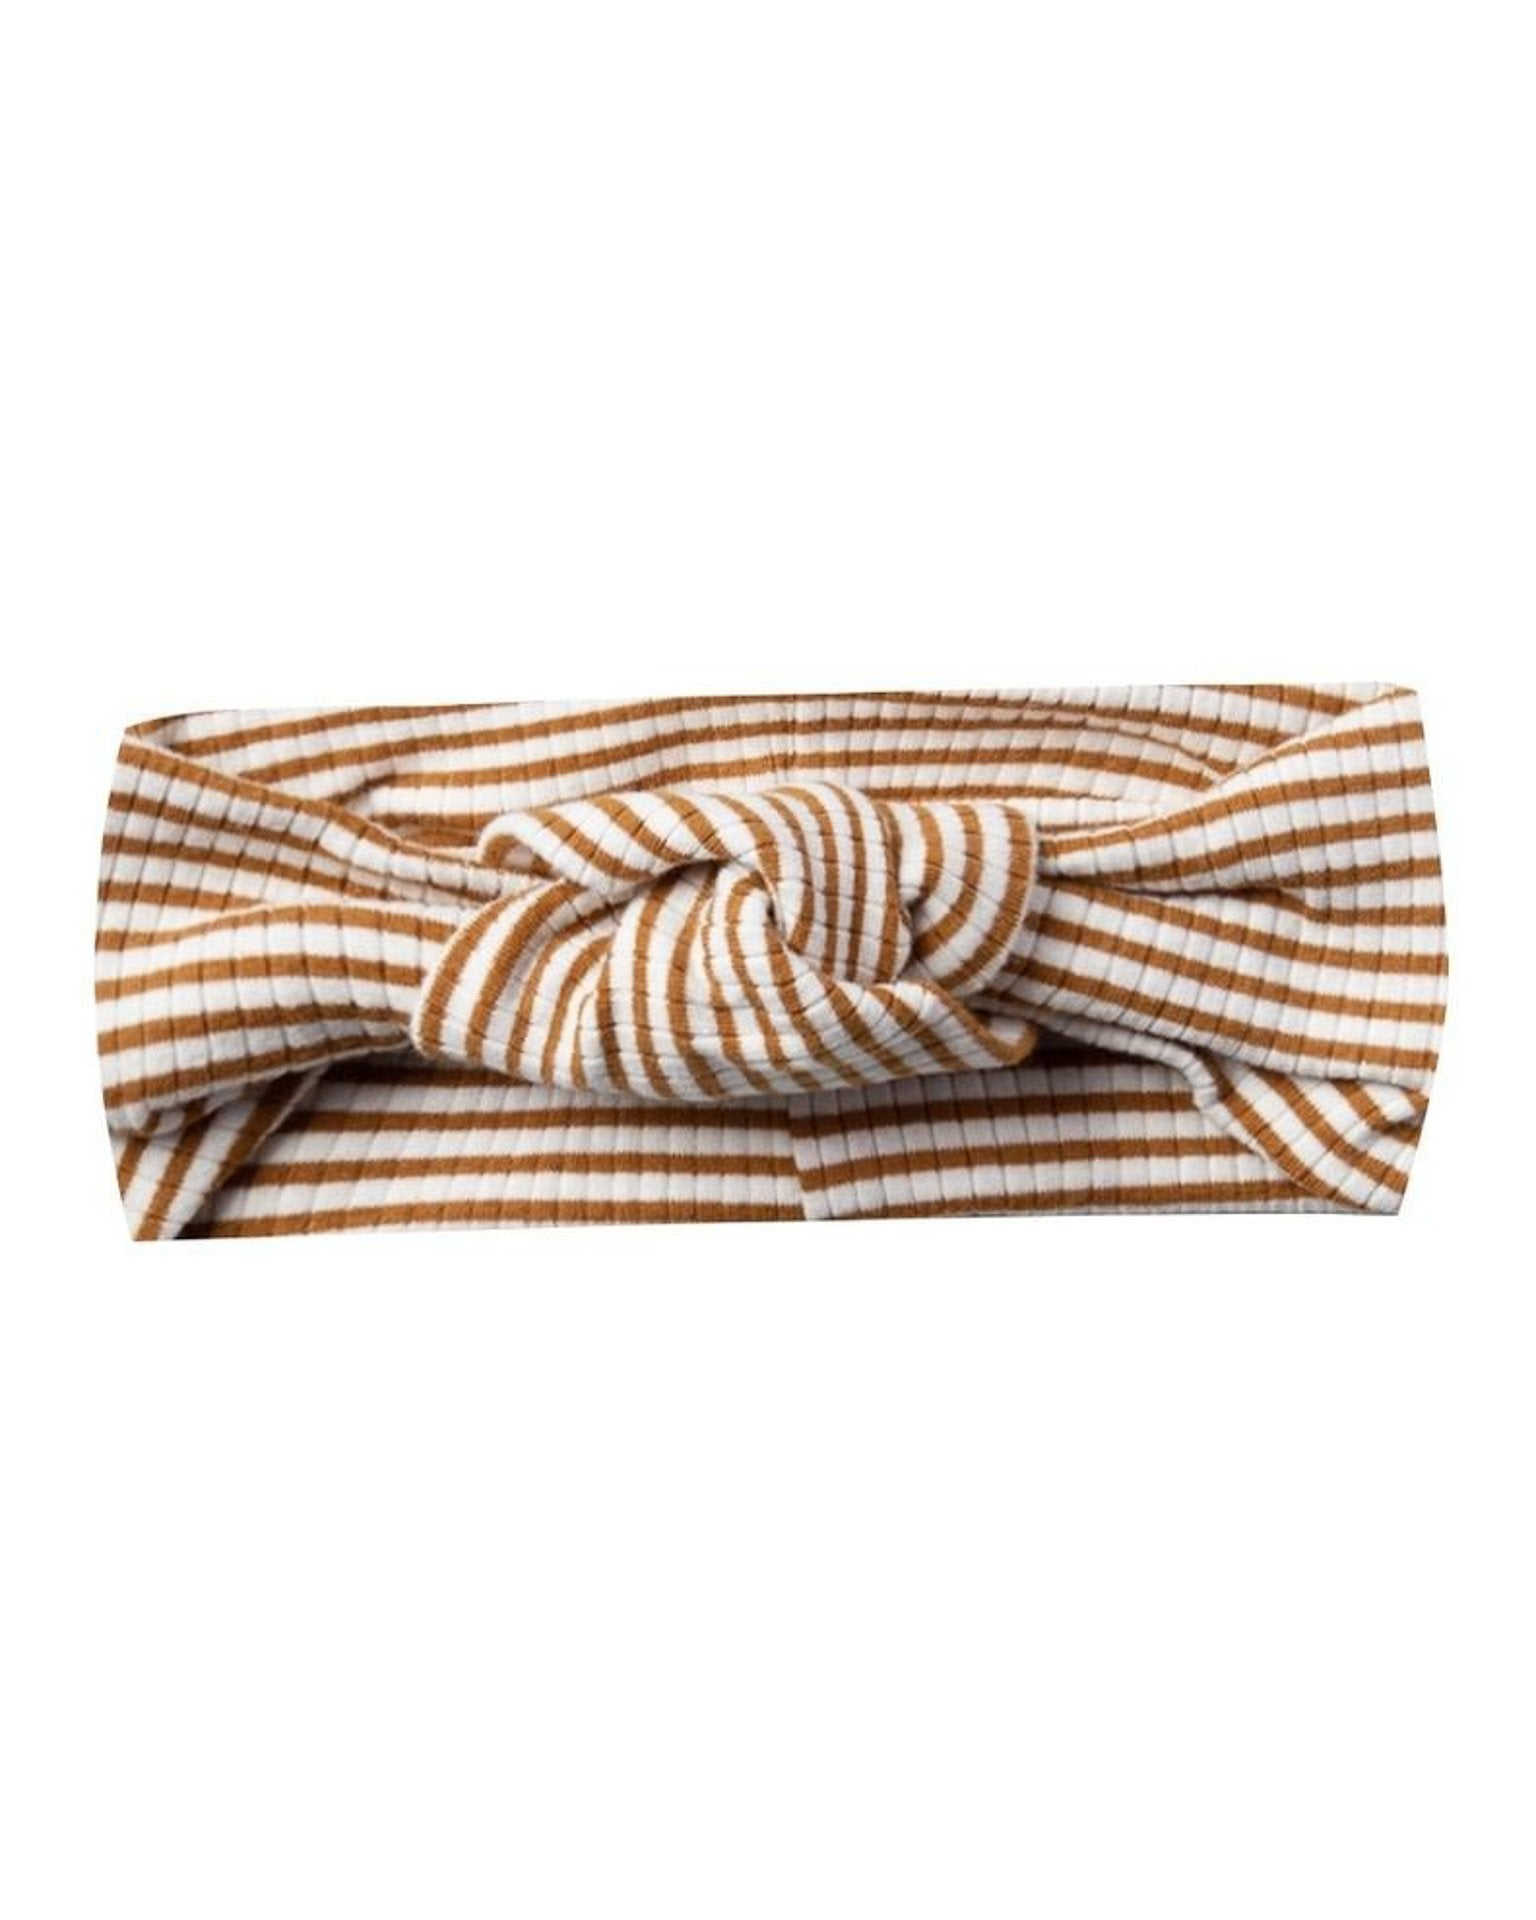 Little quincy mae baby accessories ribbed turban in walnut stripe